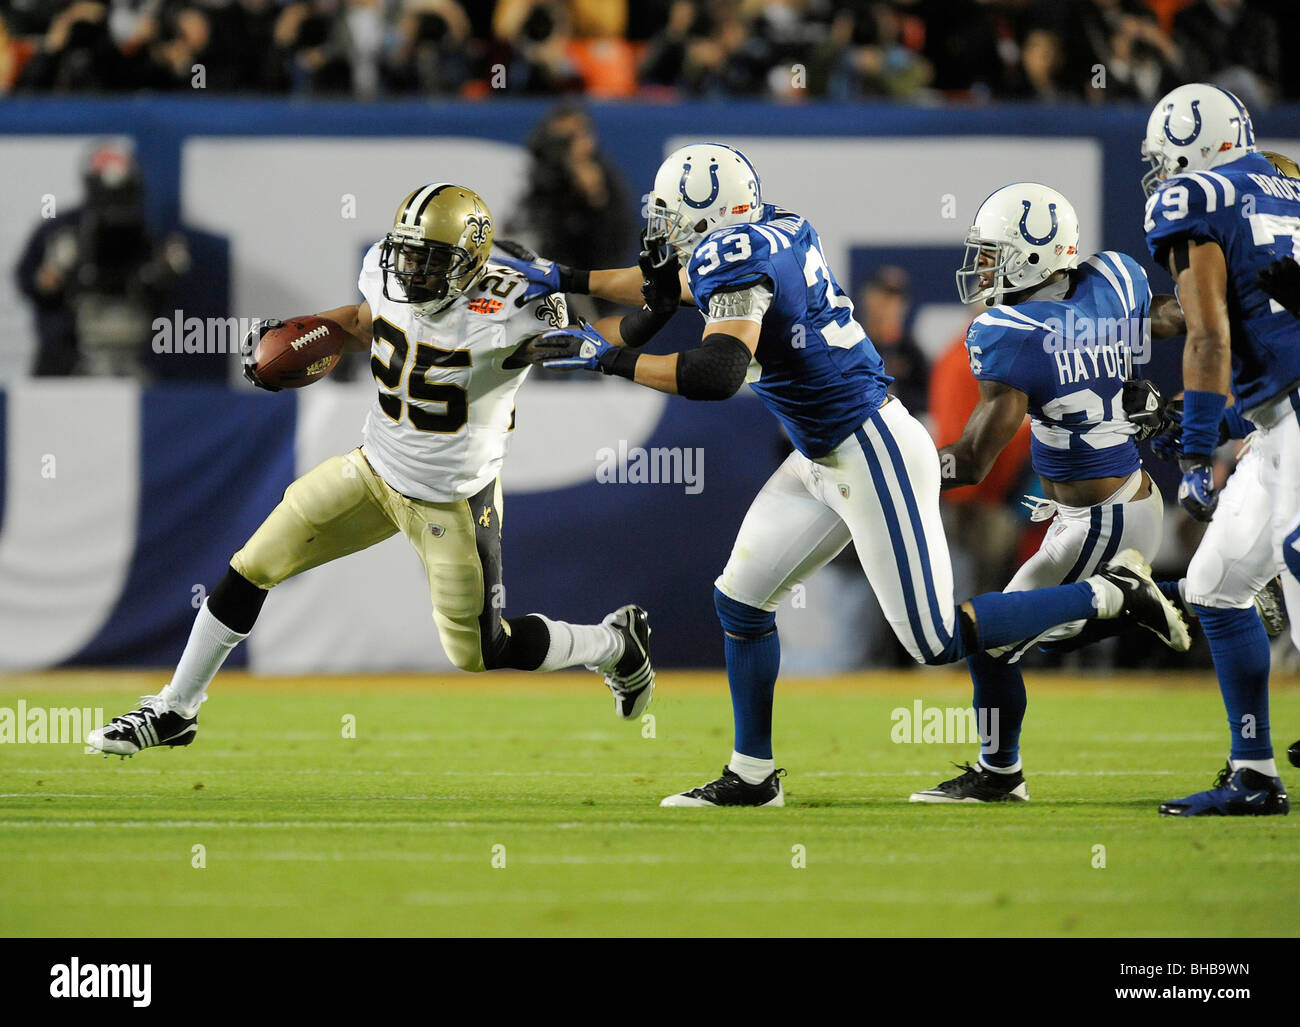 Reggie bush #25 dei New Orleans Saints precipita come Melvin Bullitt #33 di Indianapolis Colts difende nel Super Immagini Stock